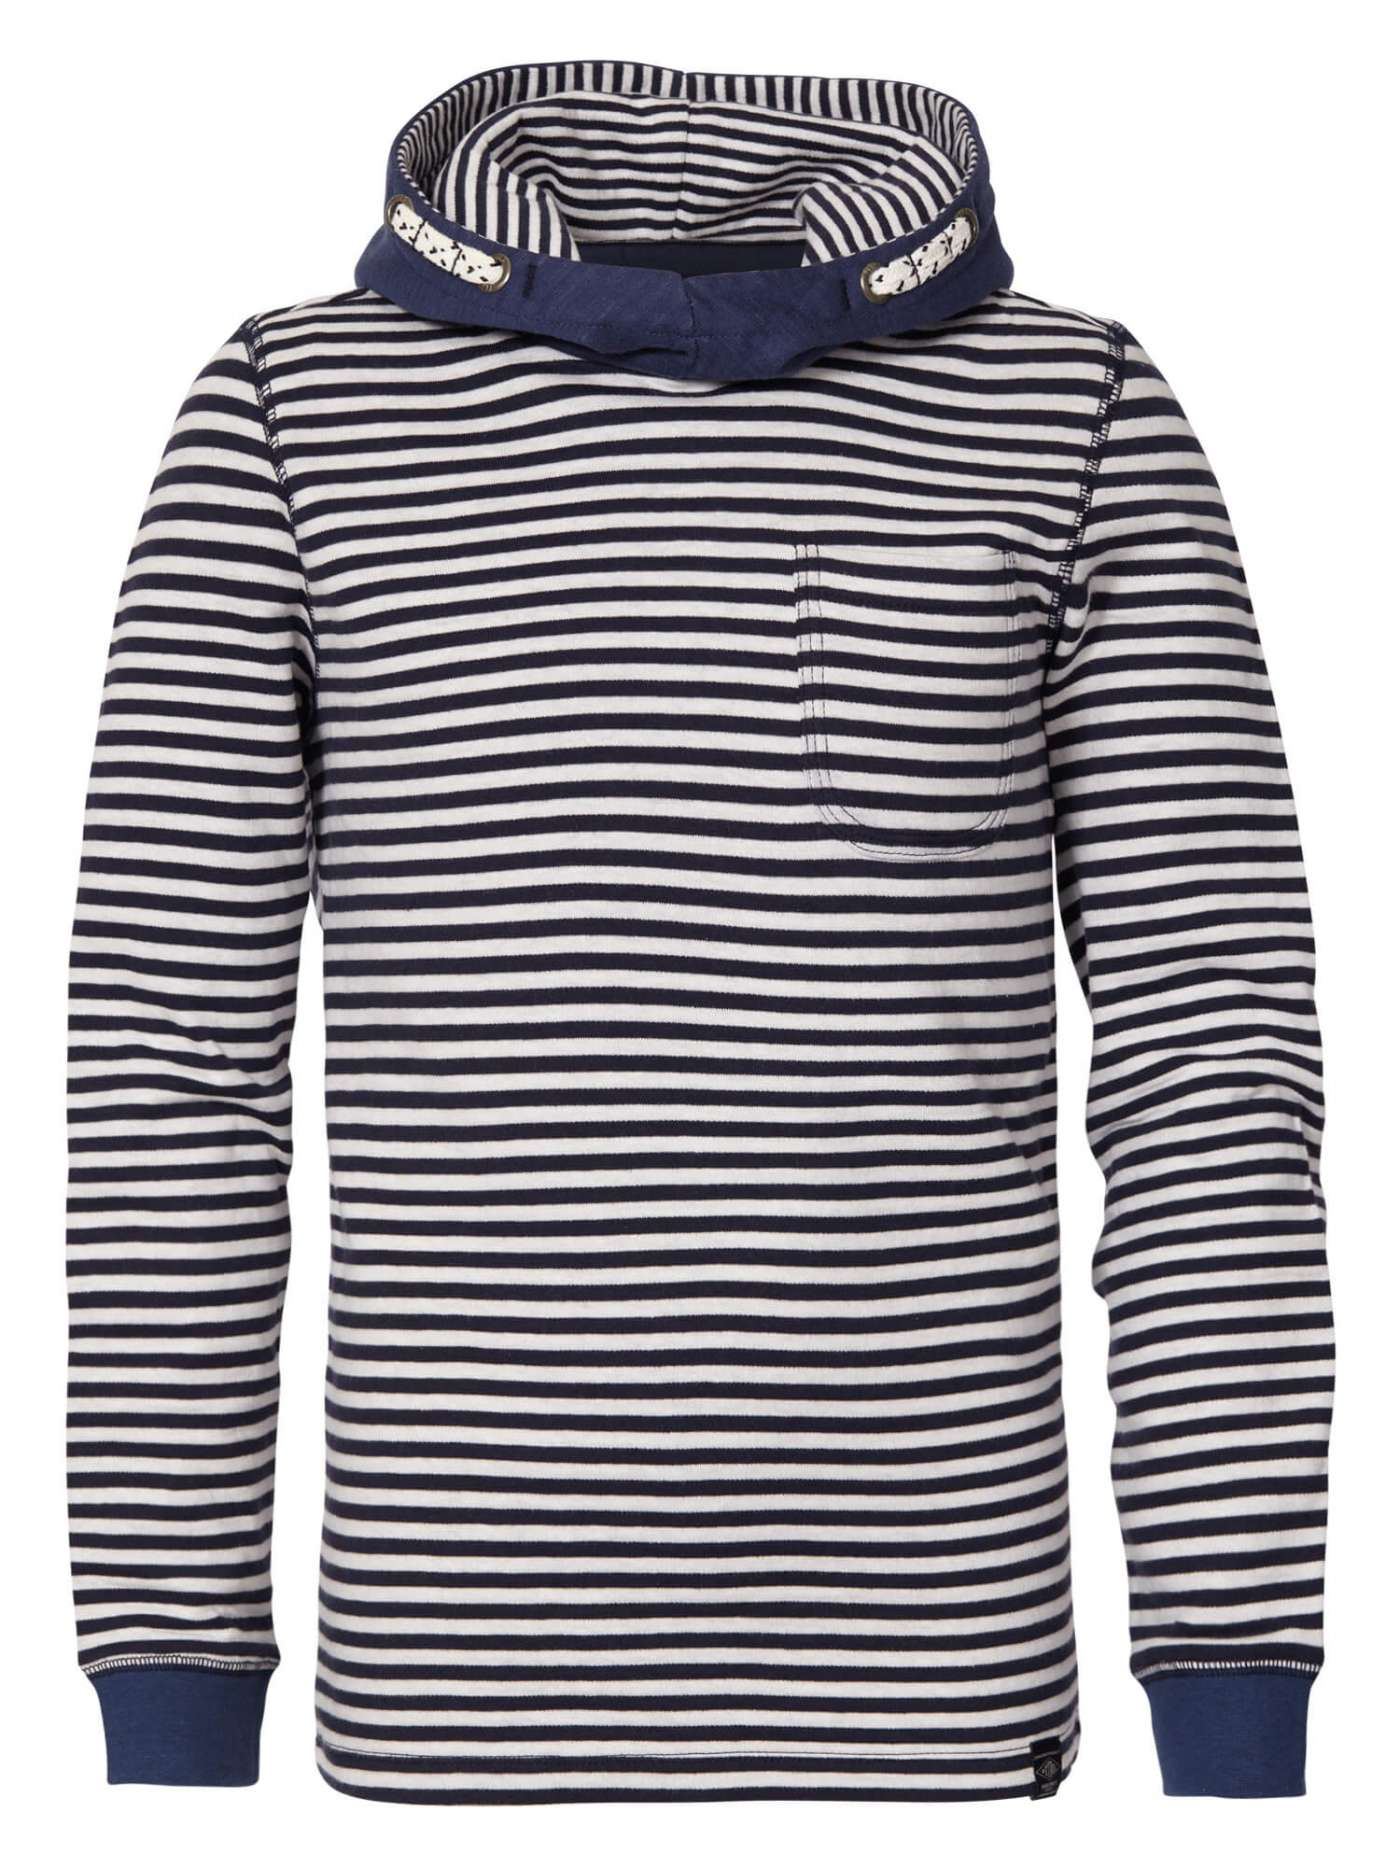 Long-sleeved T-shirt with hood